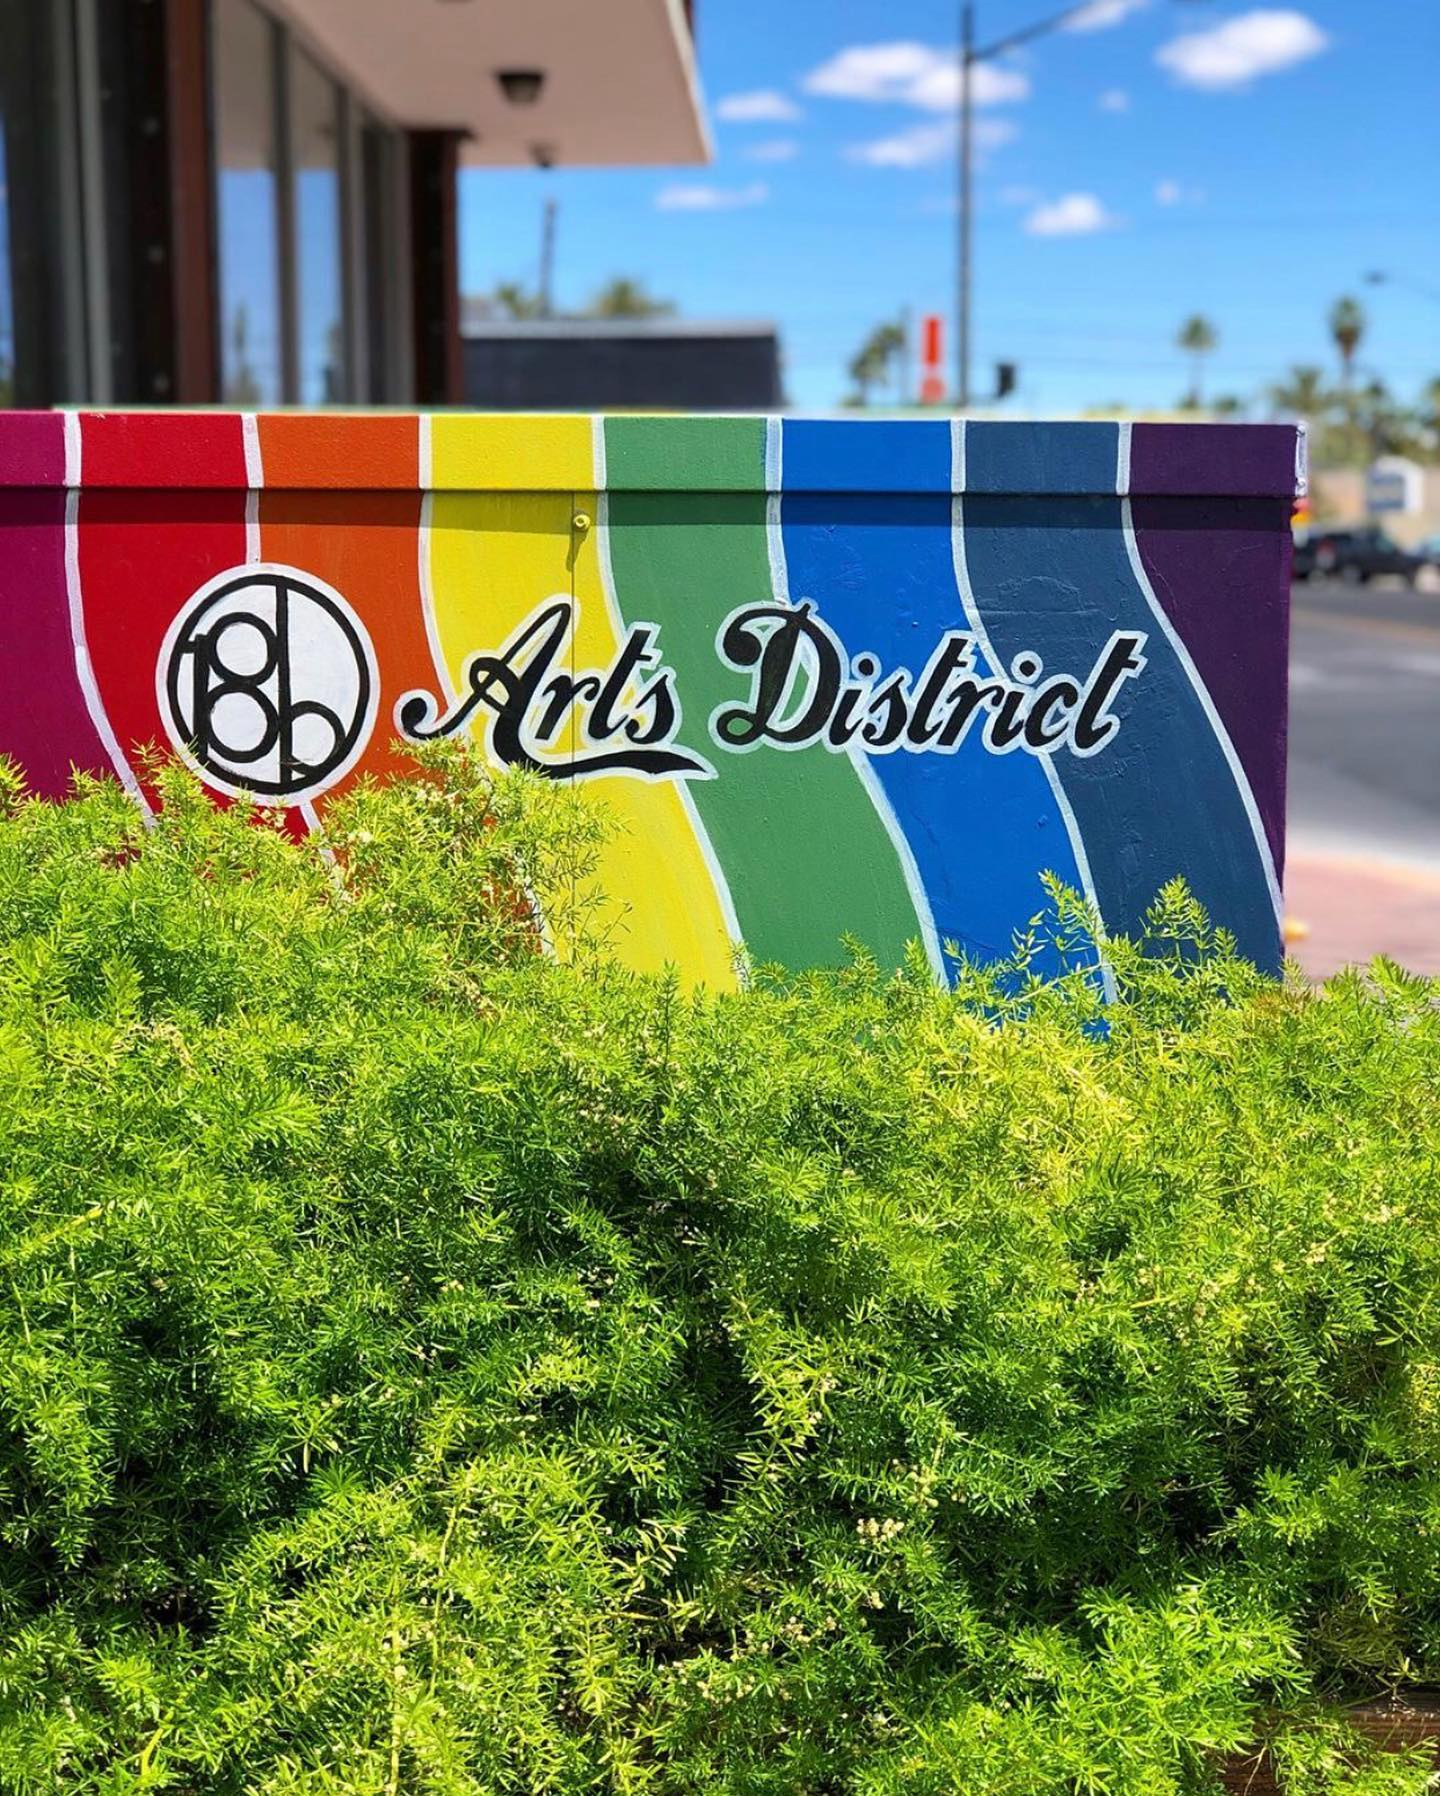 first fridays Arts District sign in multiple colors